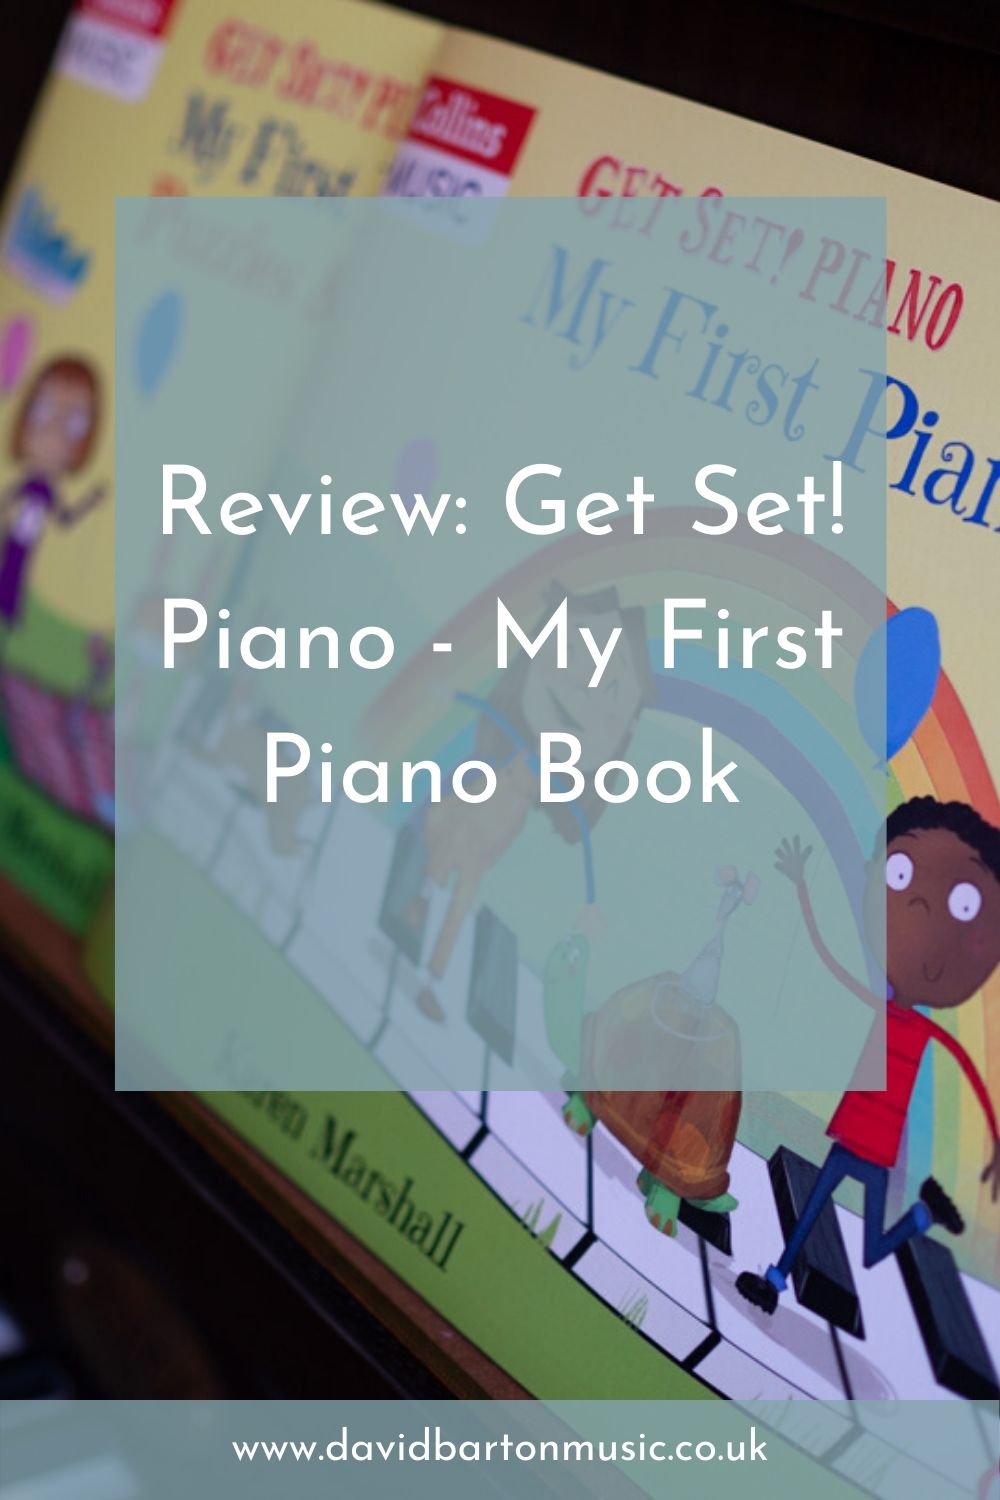 Review: Get Set! Piano - My First Piano Book - Pinterest Graphic